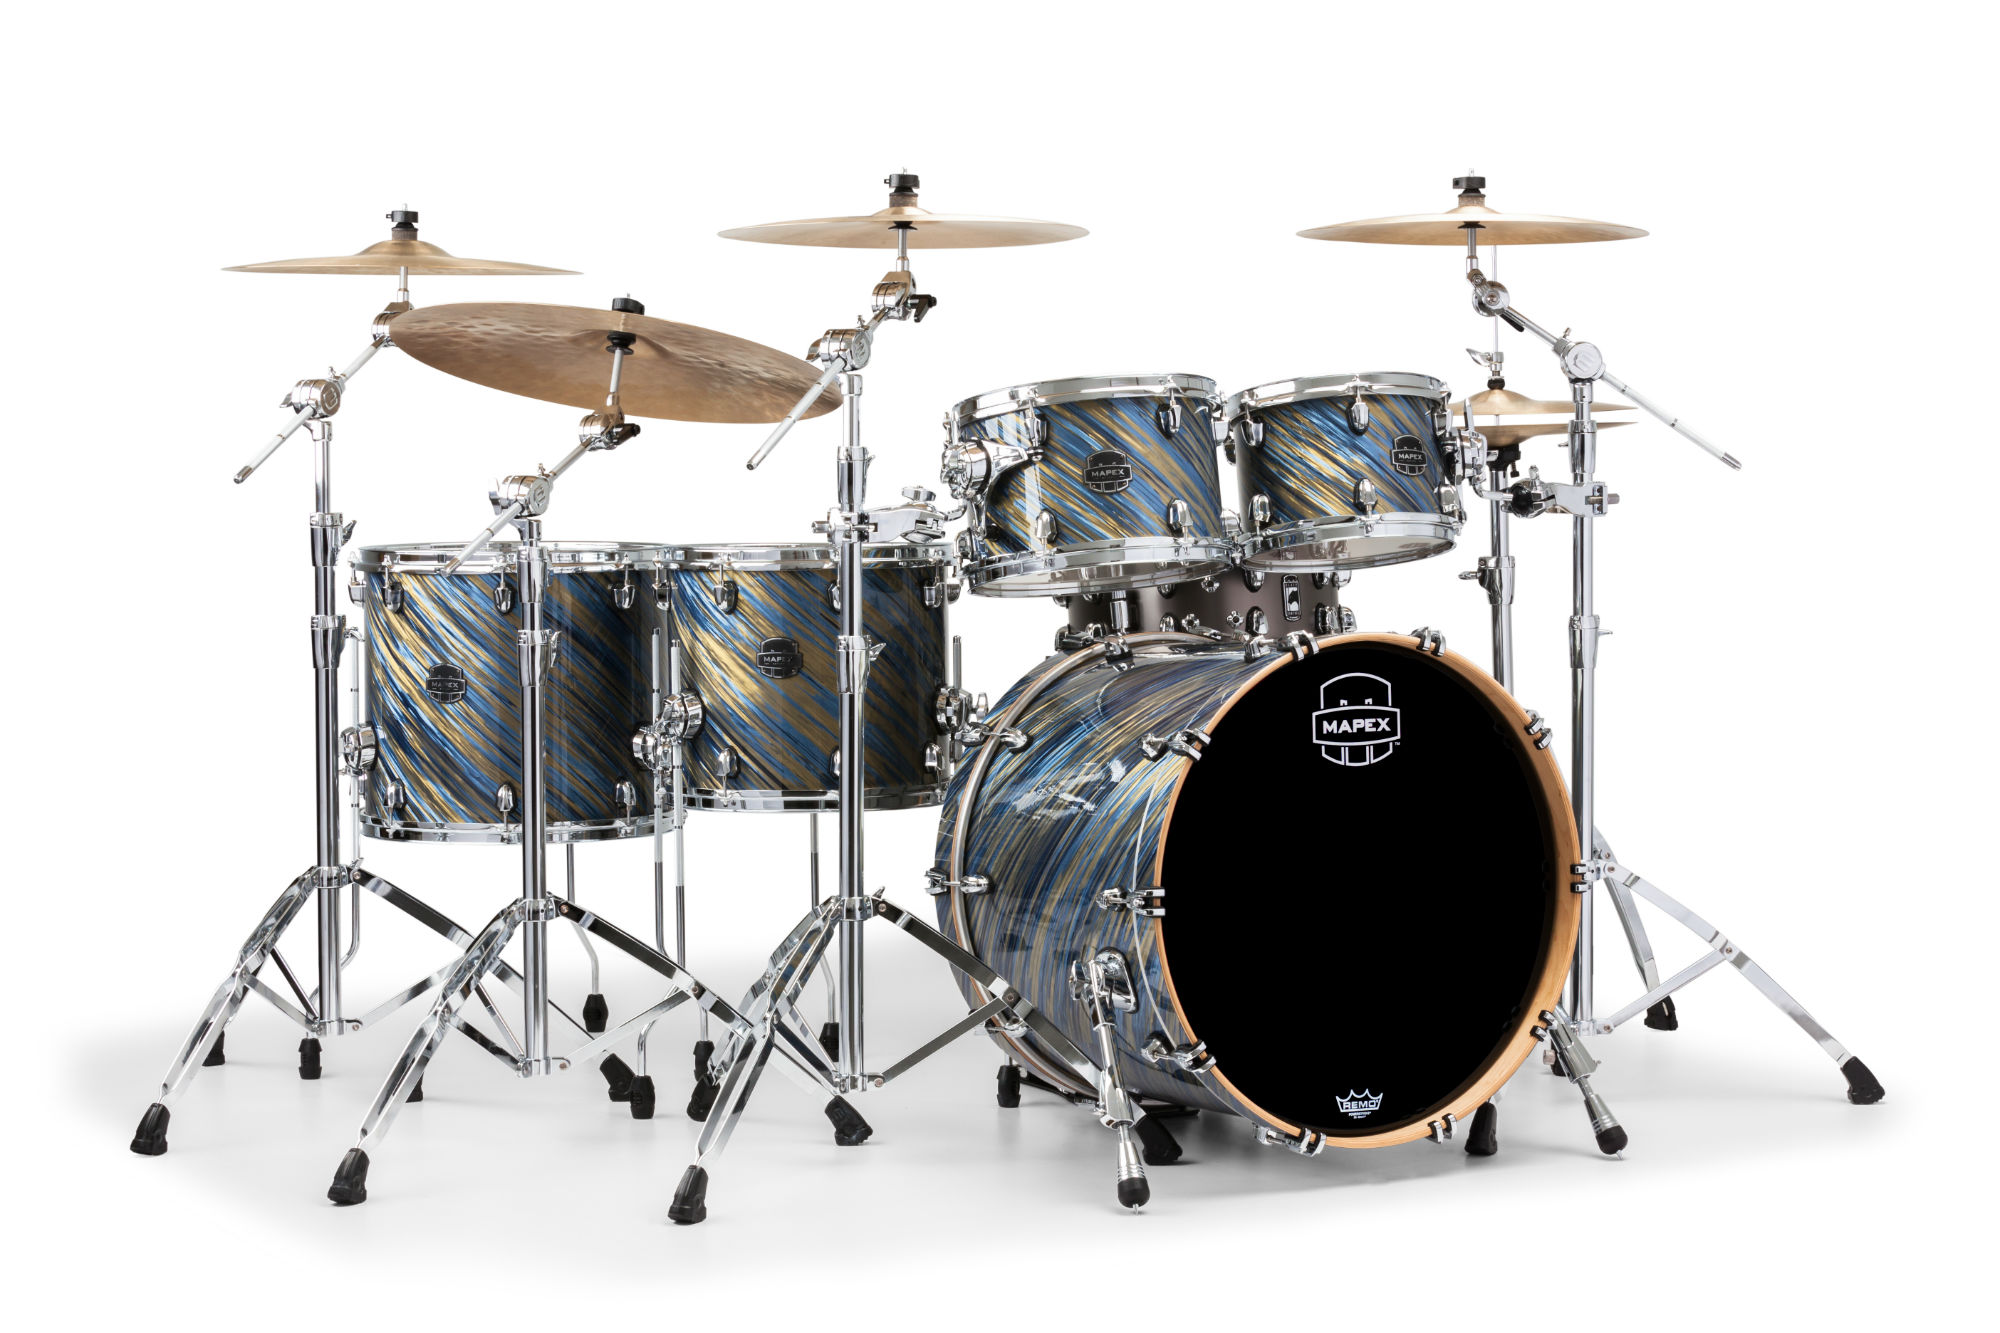 Mapex Saturn V MH Studioease 5-piece shell pack with SONIClear Edge - SV628XUMA - Marine Spiral